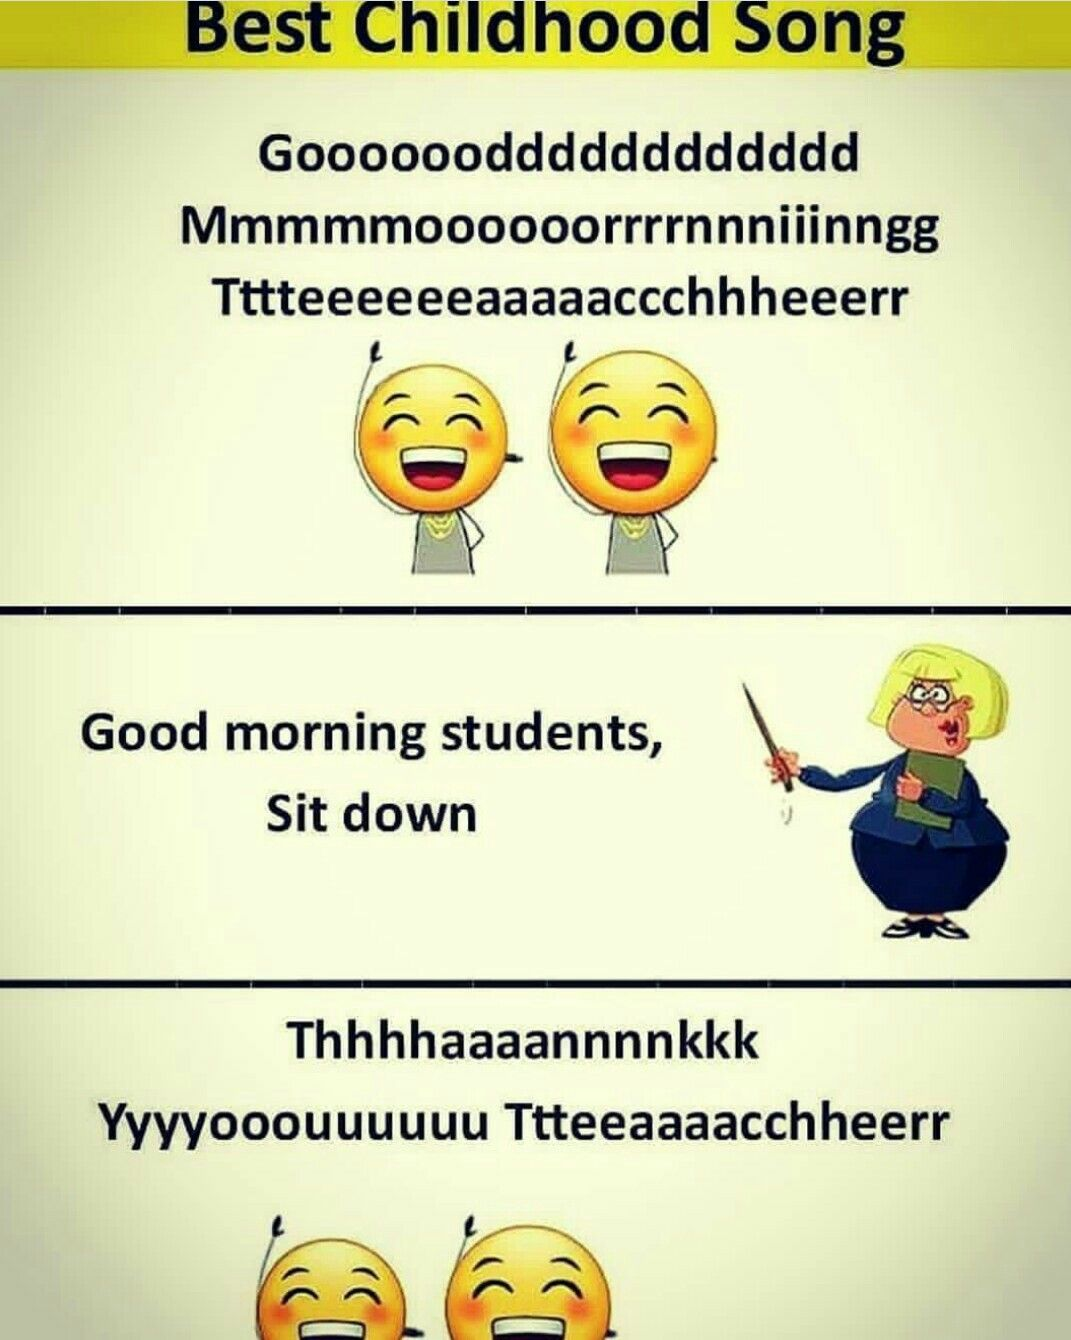 Pin By Nina On Comedy Joke S School Quotes Funny Funny School Jokes Latest Funny Jokes